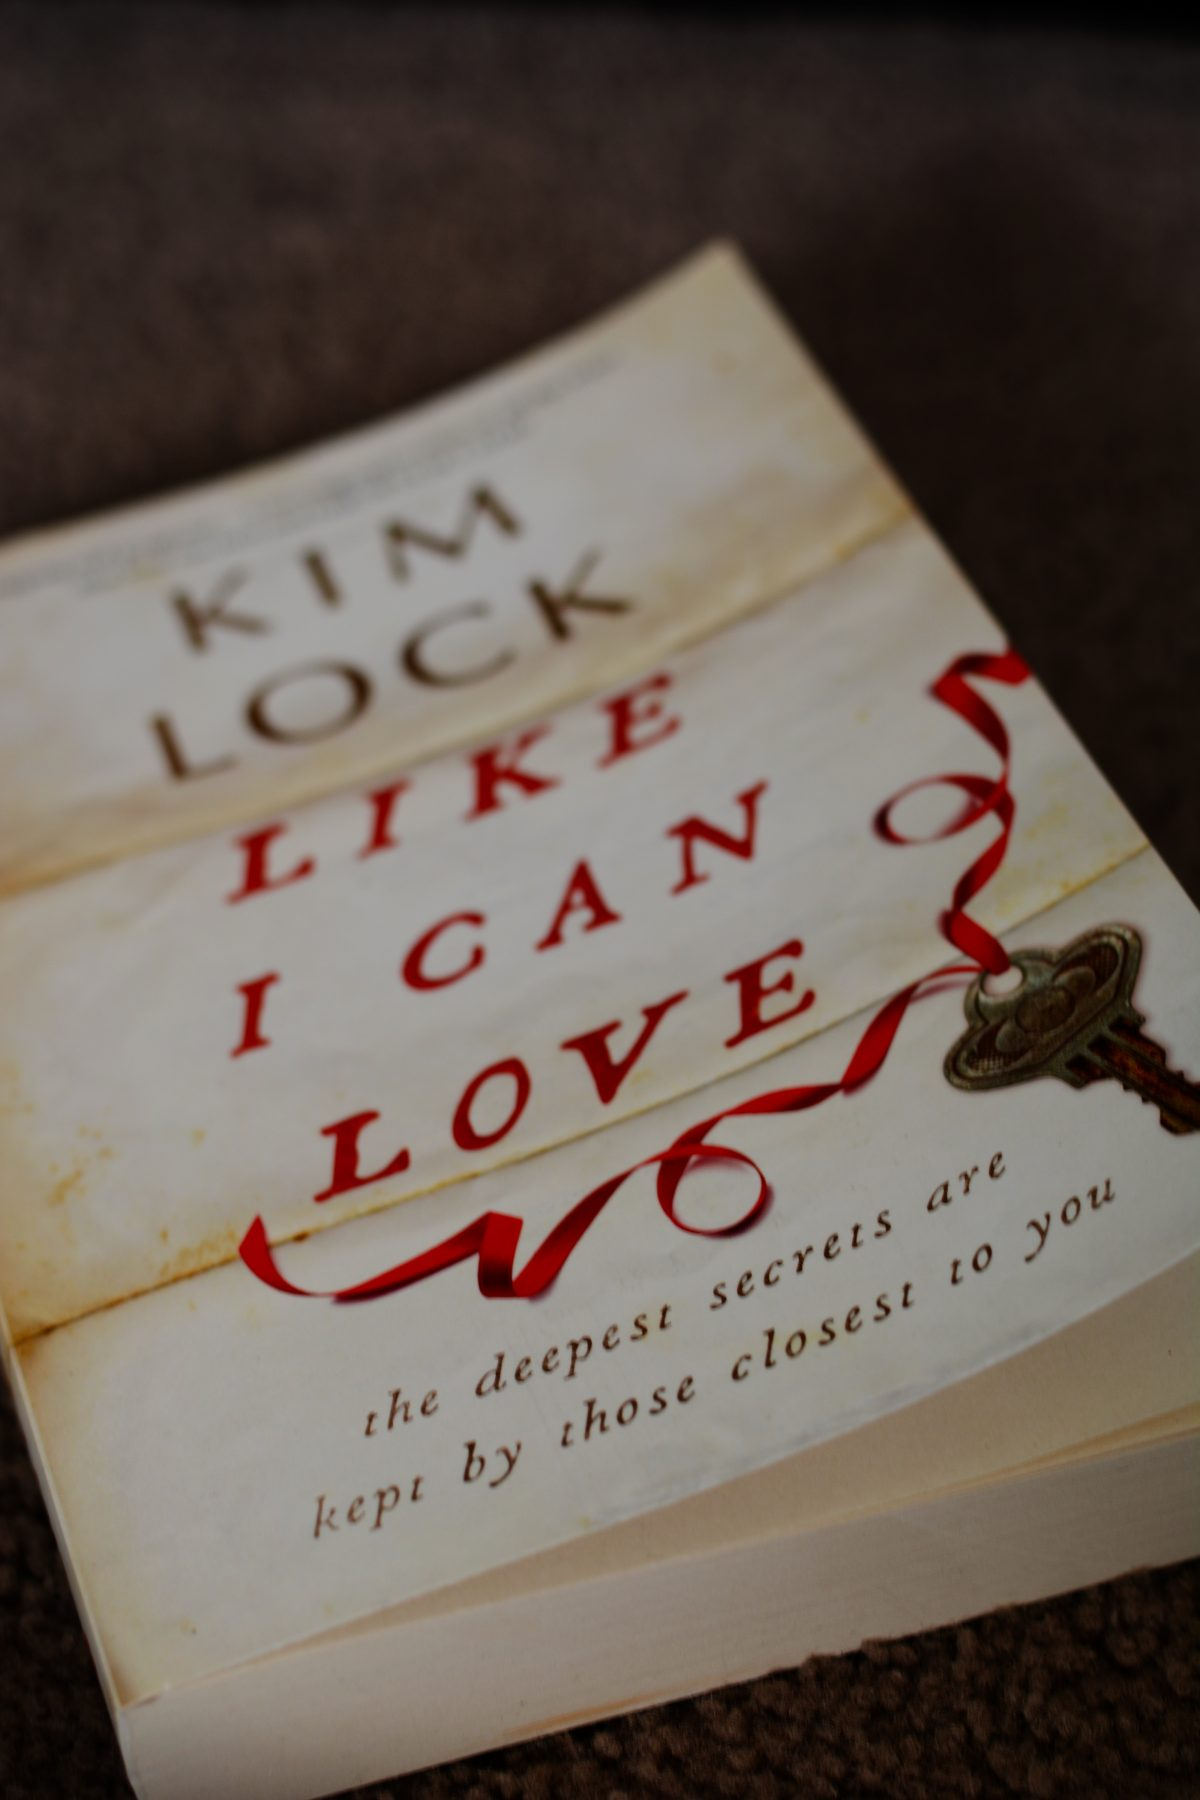 Like I Can Love by Kim Lock - a book review - thespiceadventuress.com